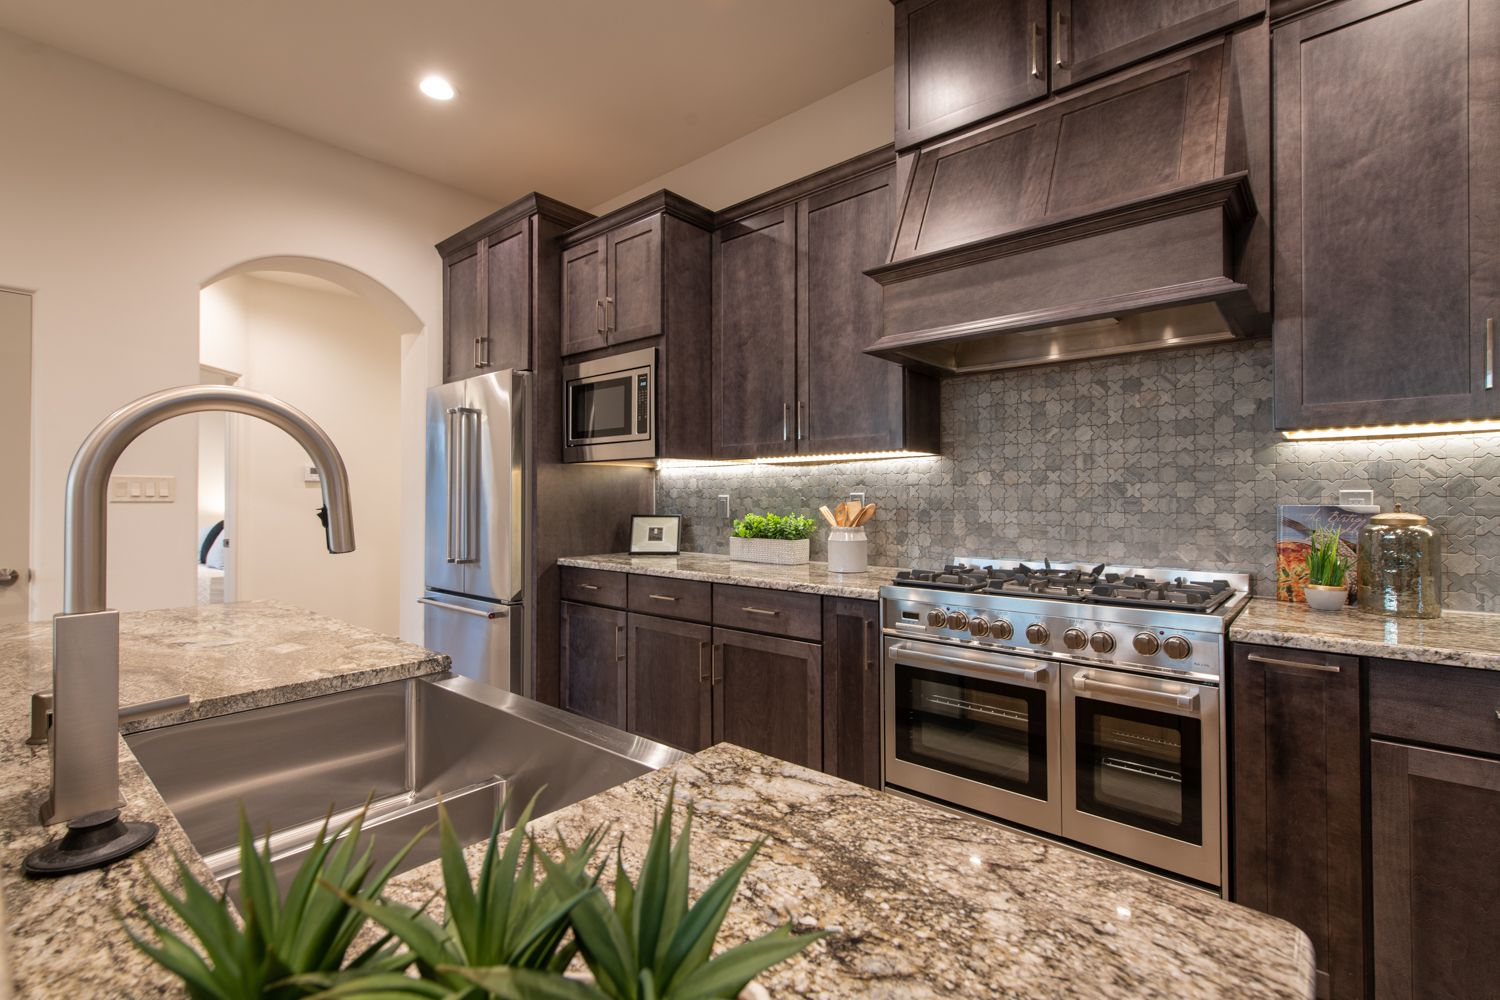 Stainless steel professional appliances, granite countertops, and custom stone inlay backsplash